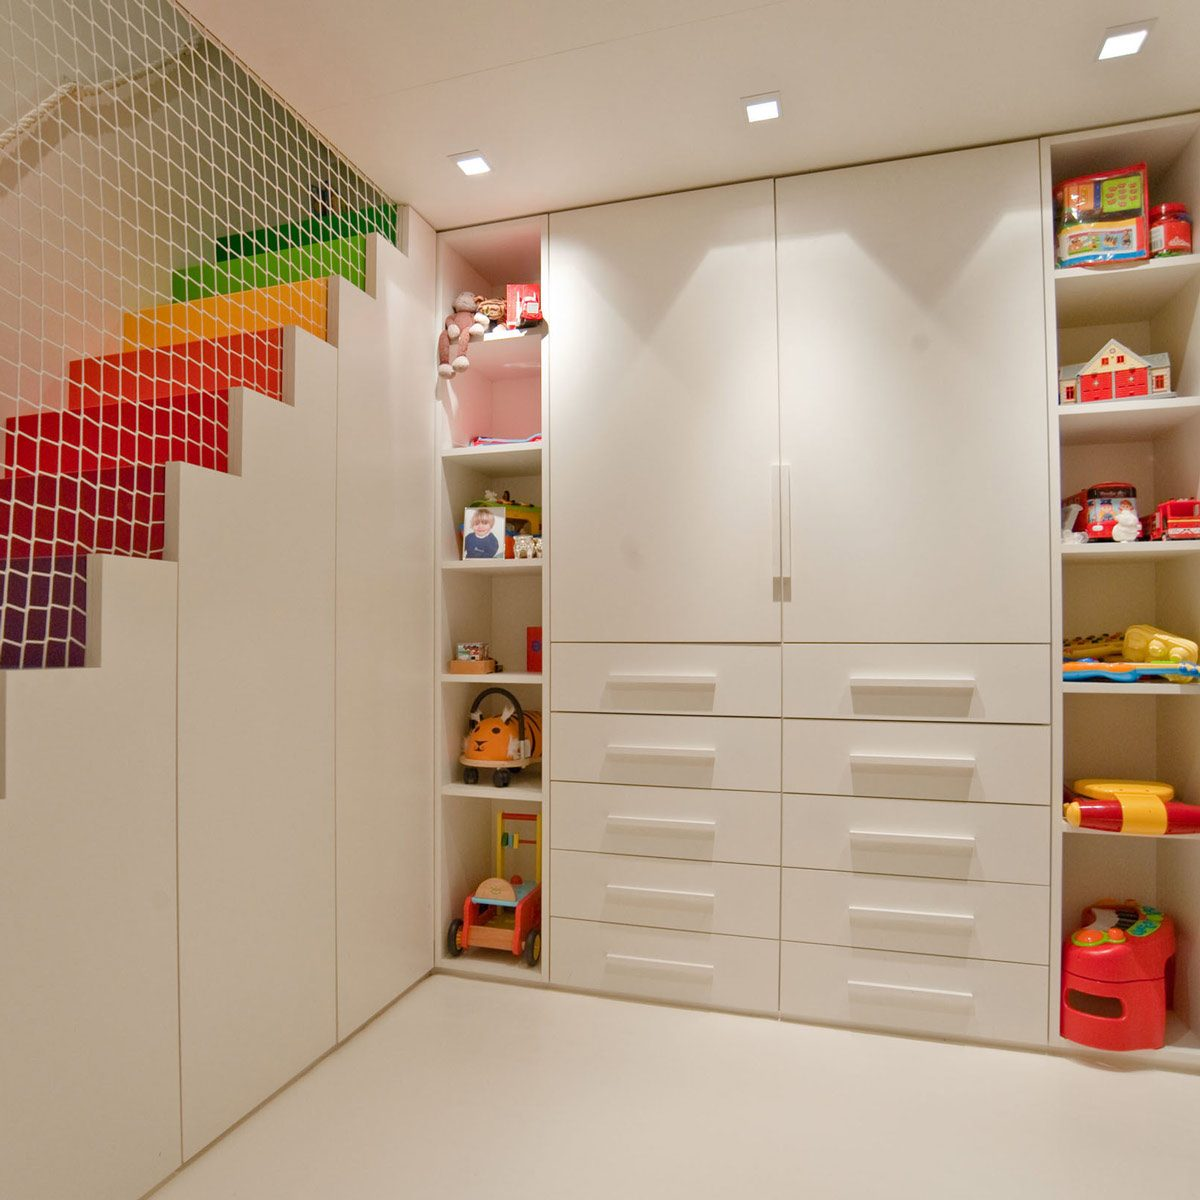 Builtinstorage Colorful Toy Storage